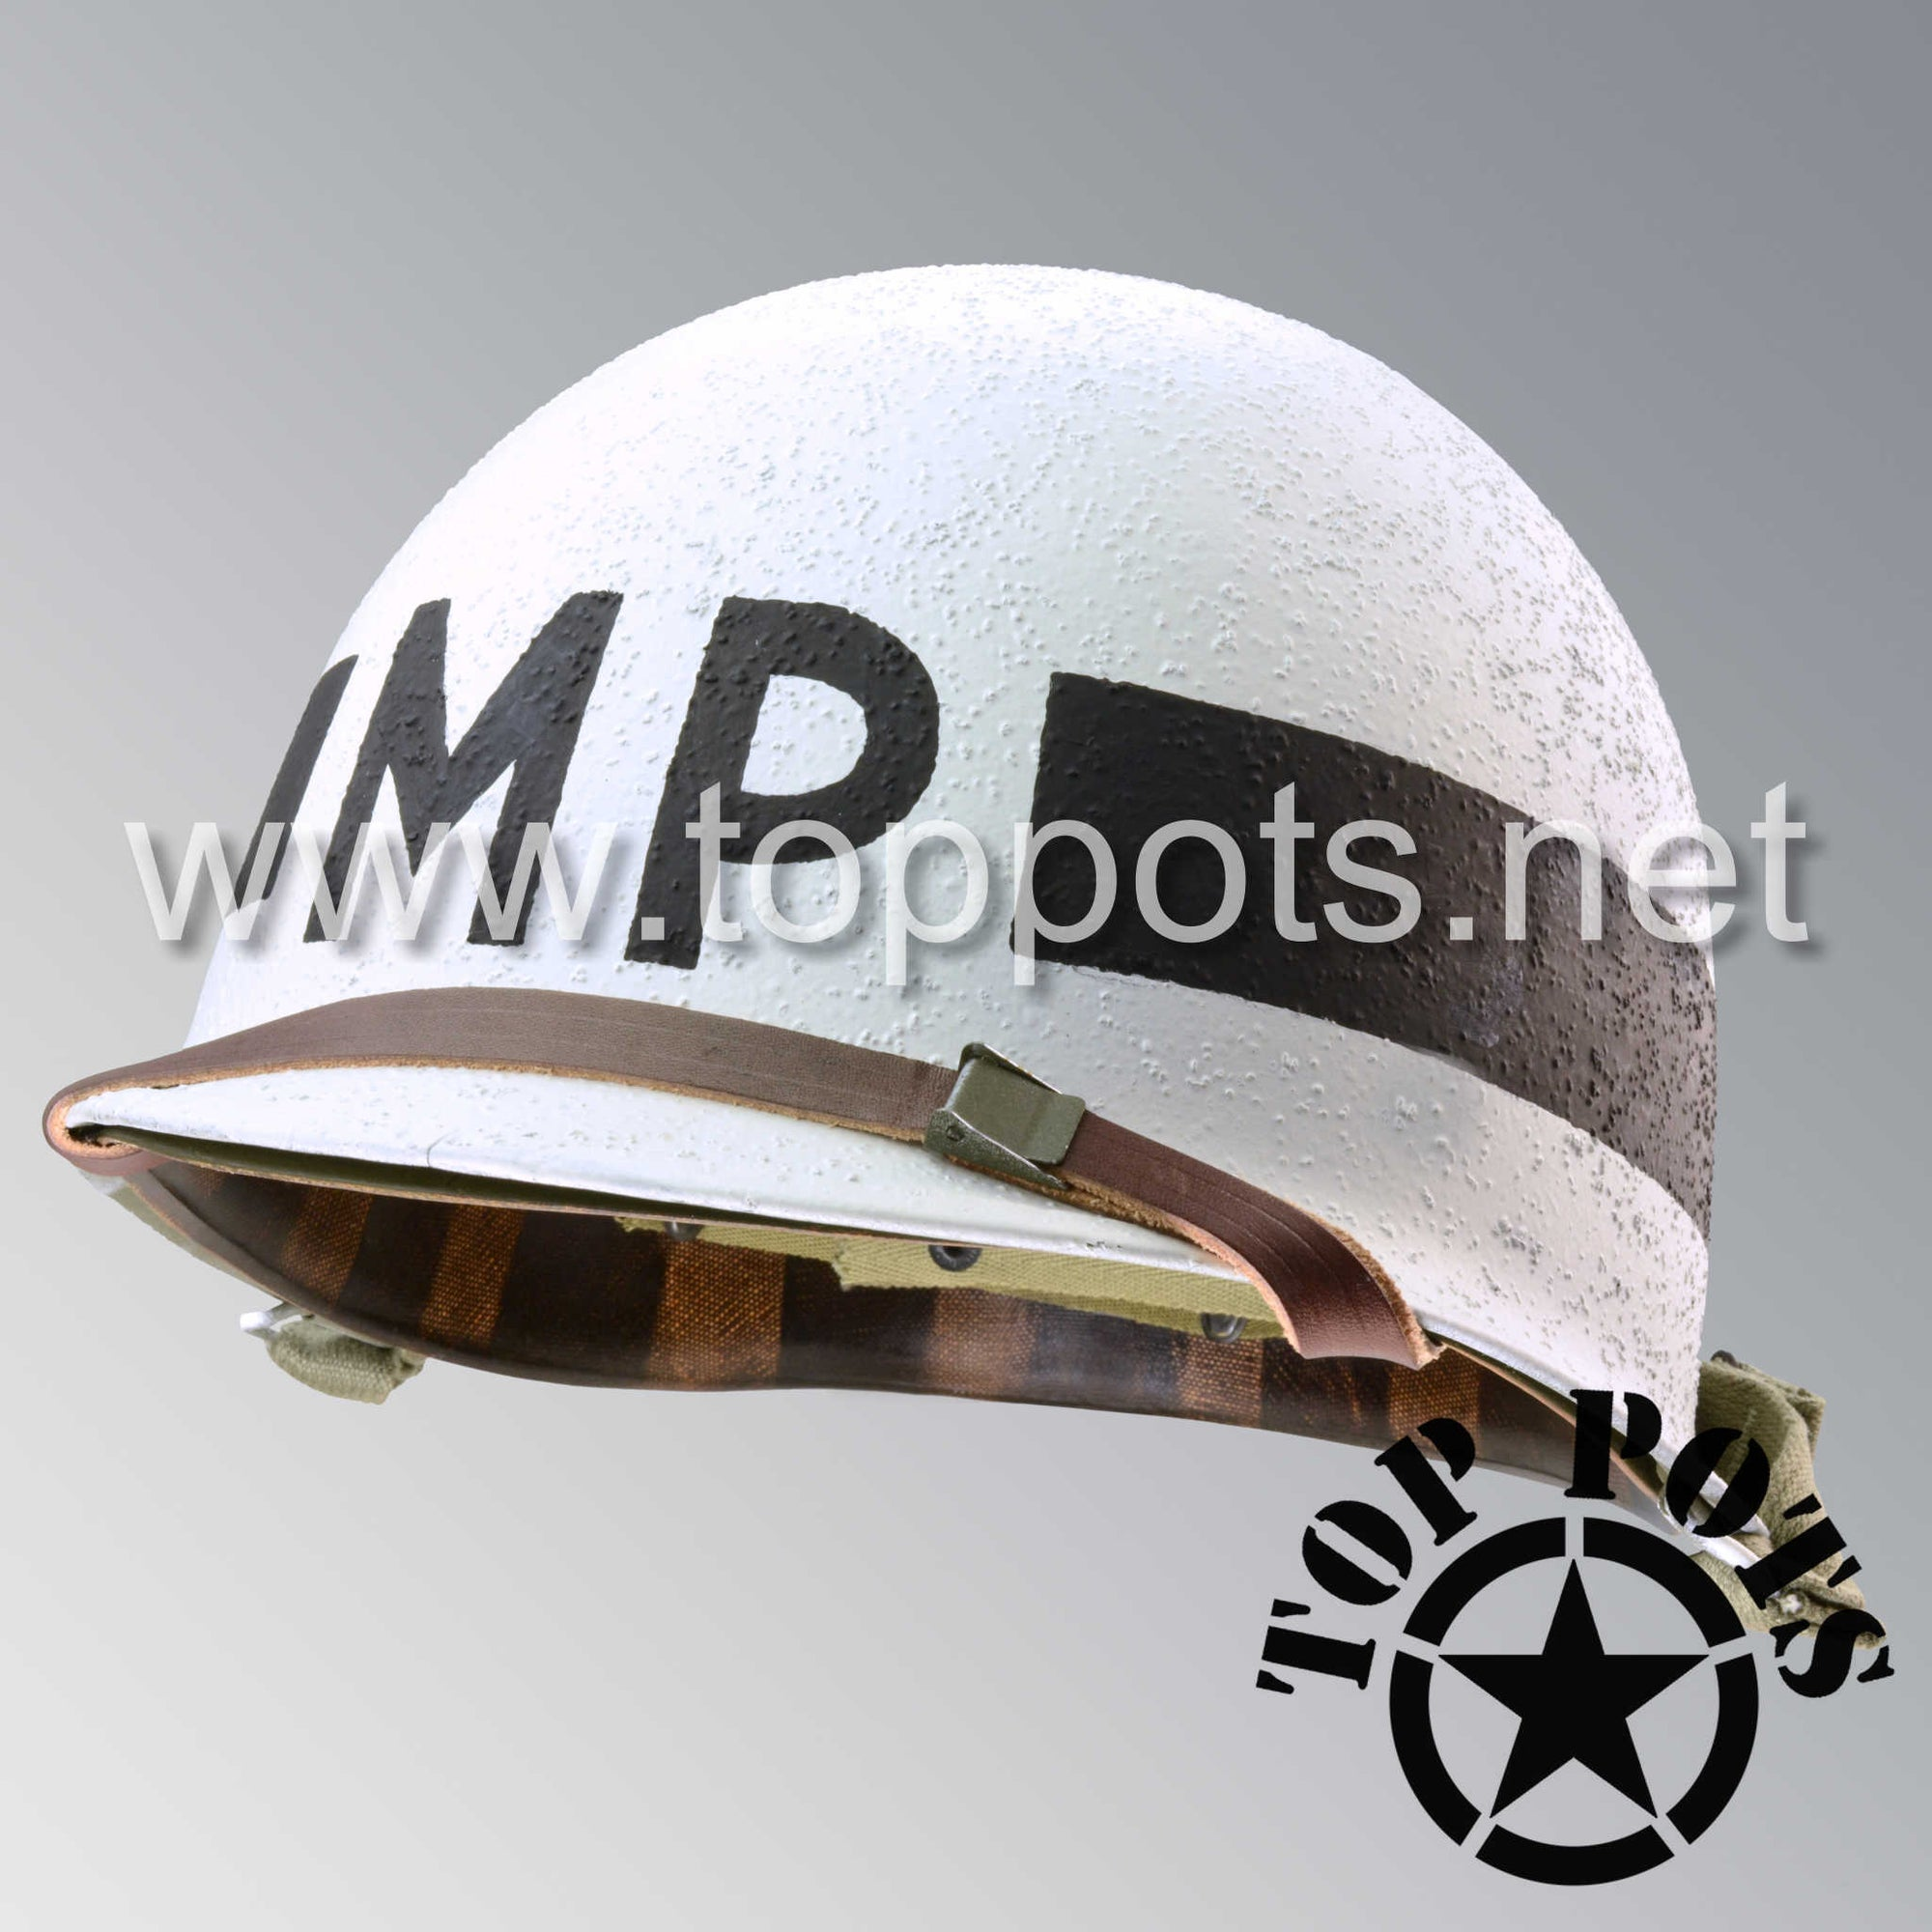 Image 1 of WWII US Army Restored Original M1 Infantry Helmet Swivel Bale Shell and Liner with White MP Military Police Emblem